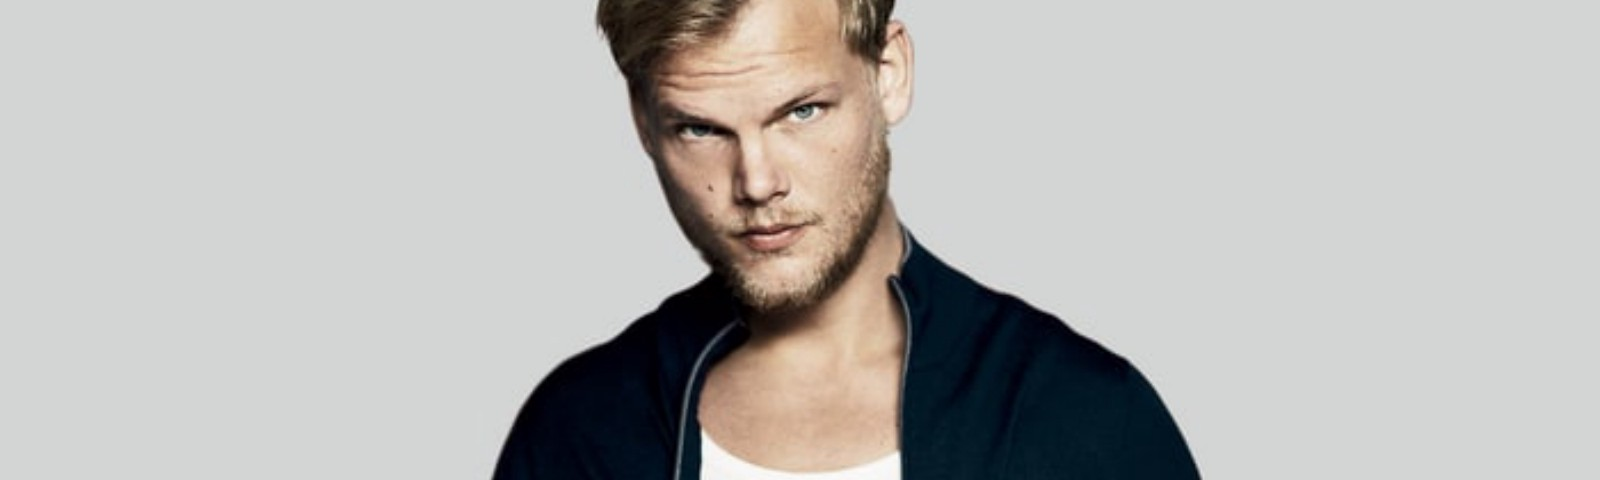 So You Want To Know The Cause of Avicii's Death? - Ivy Kwong